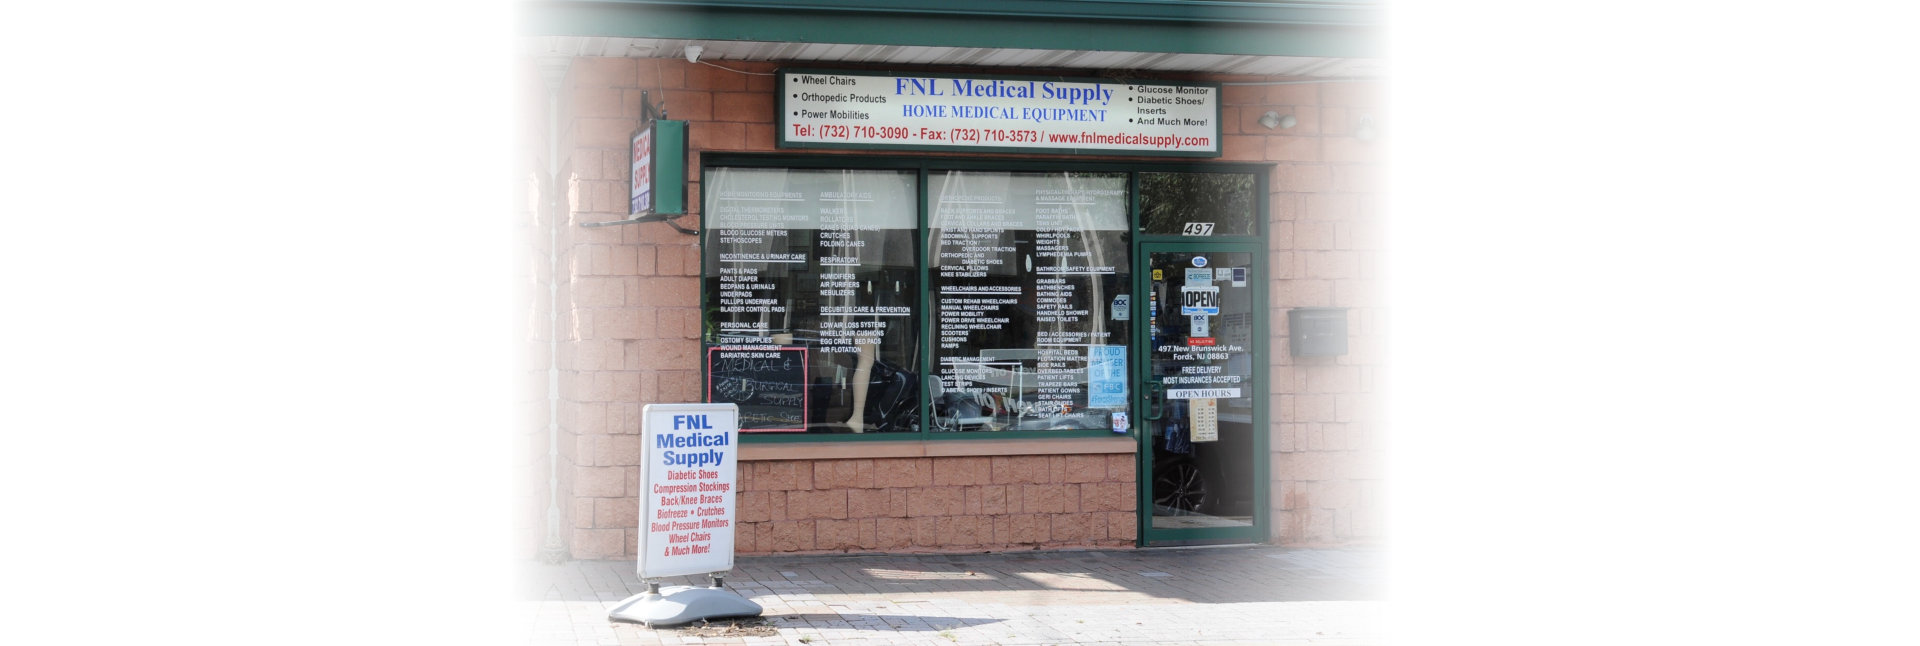 About Us | Medical Supply in New Jersey | FNL Medical Supply